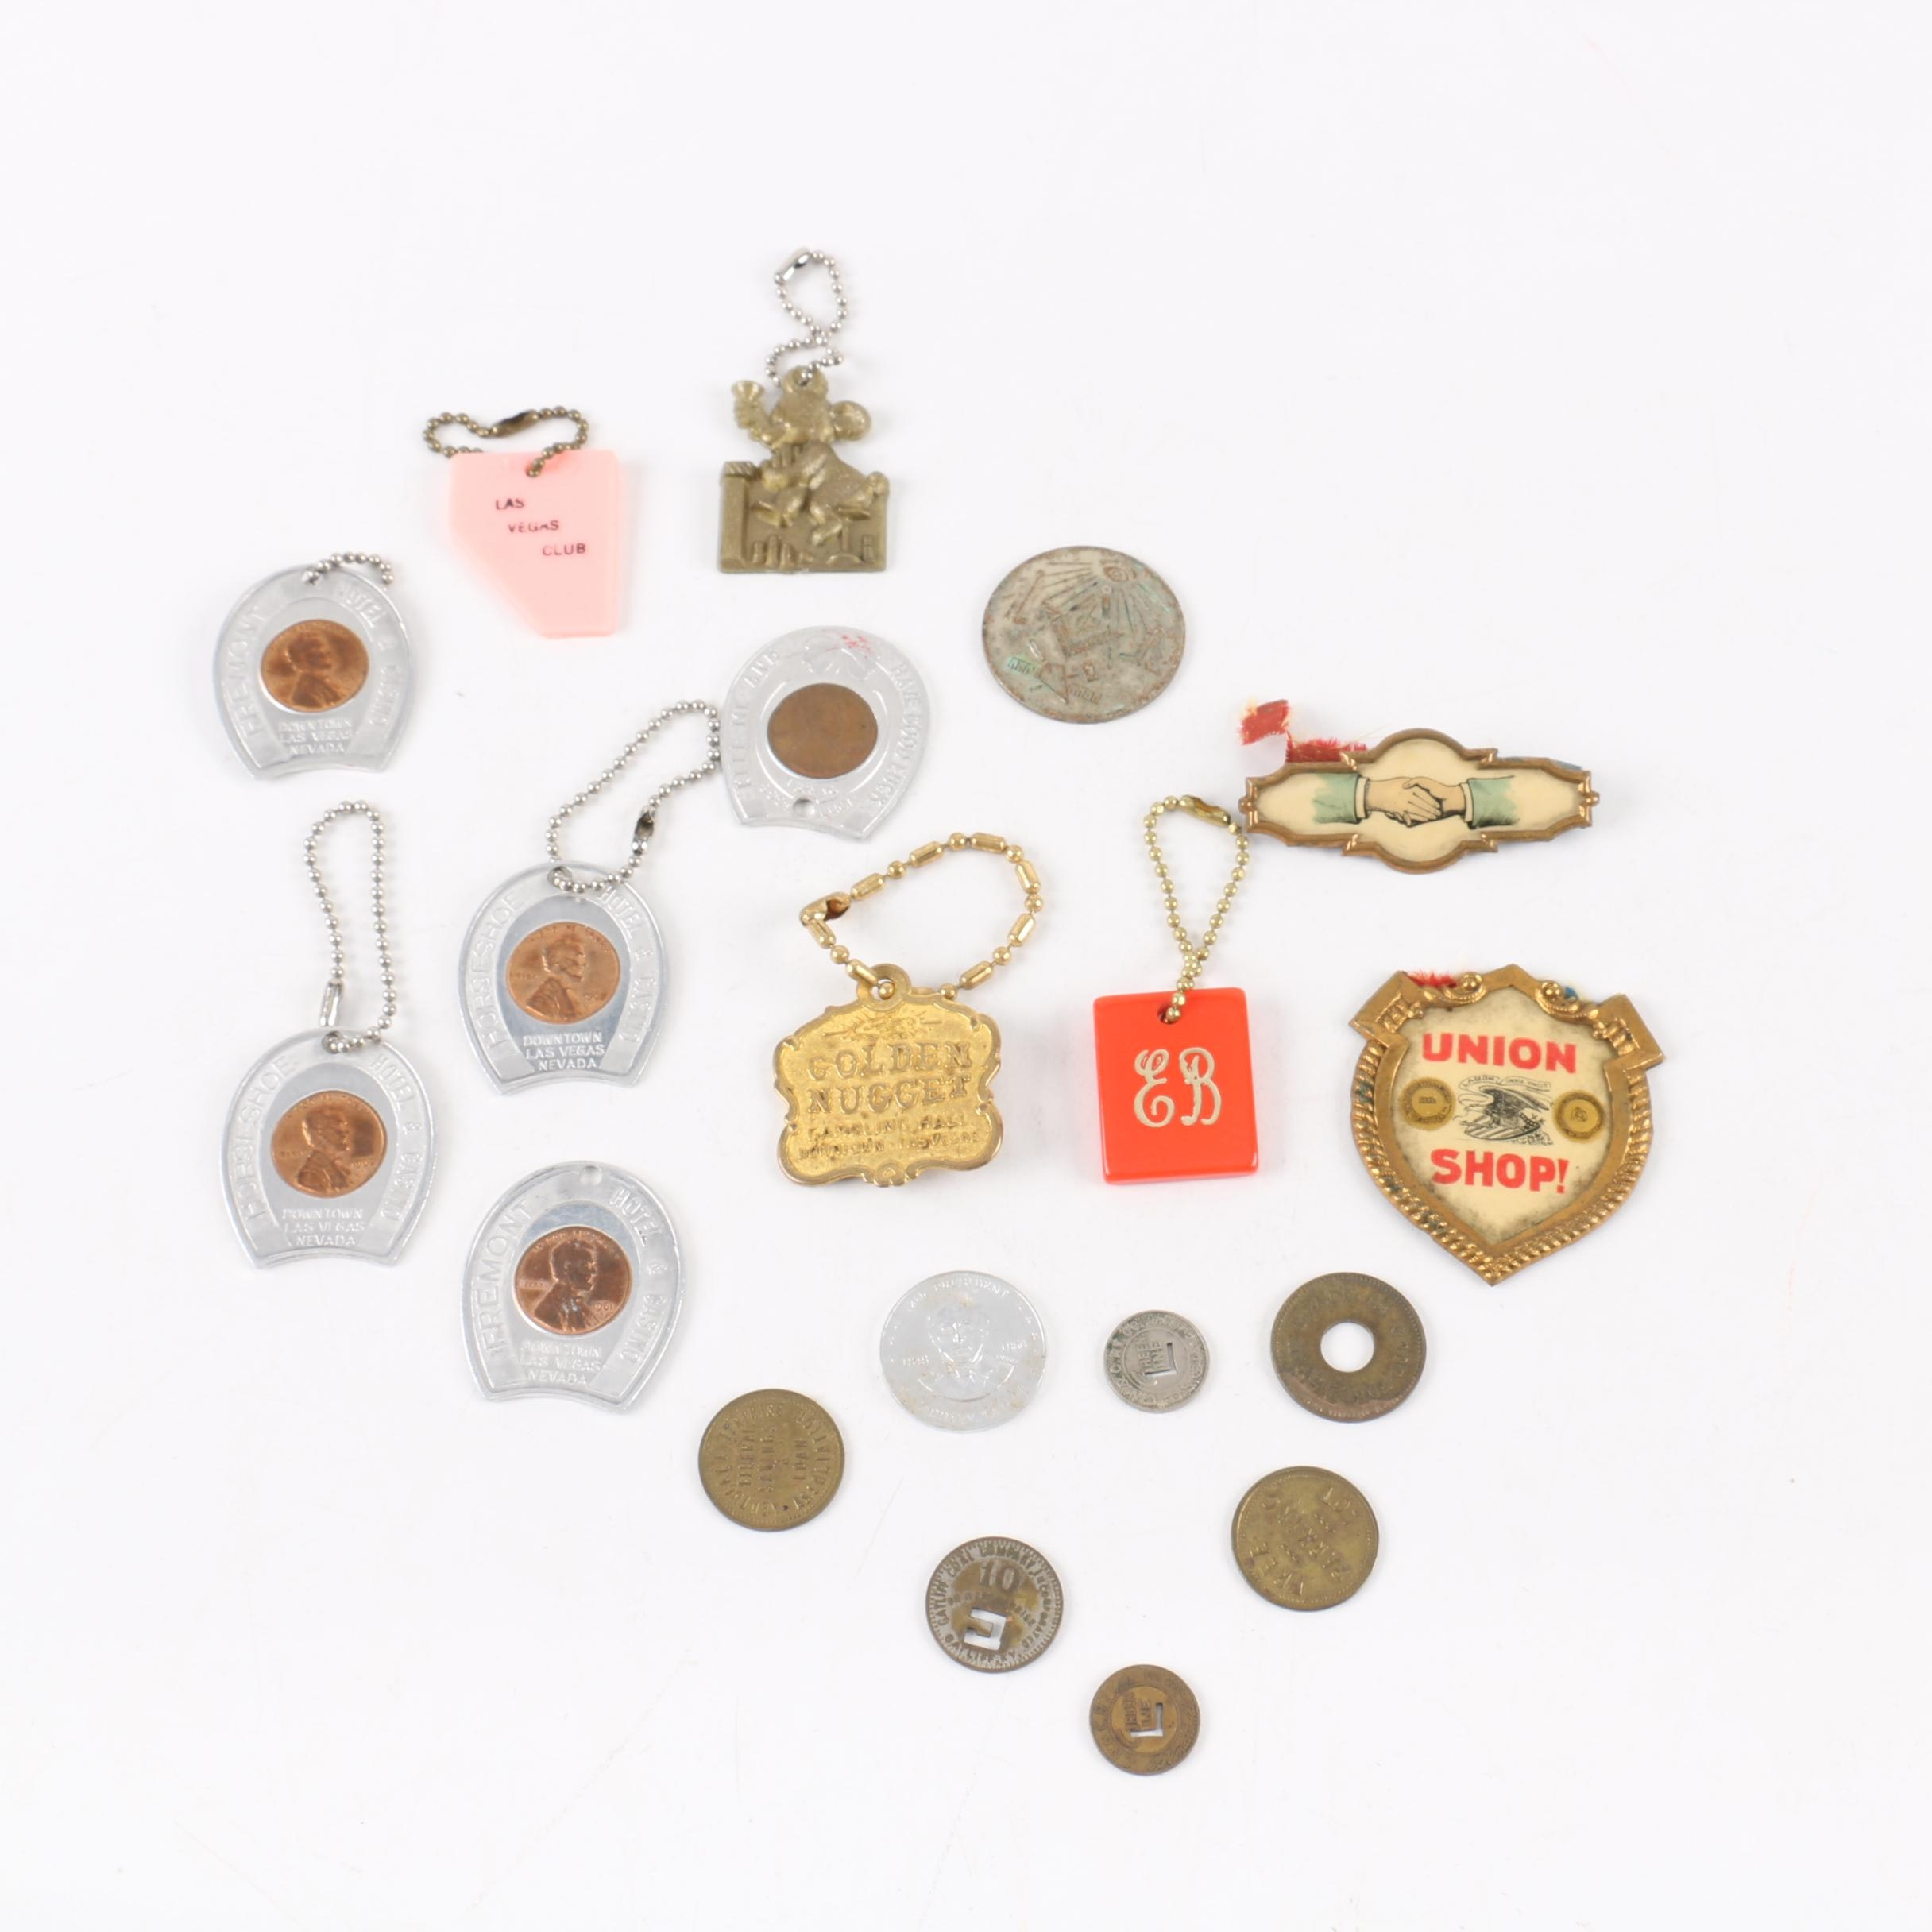 Vintage Tokens, Medals and Key Tags